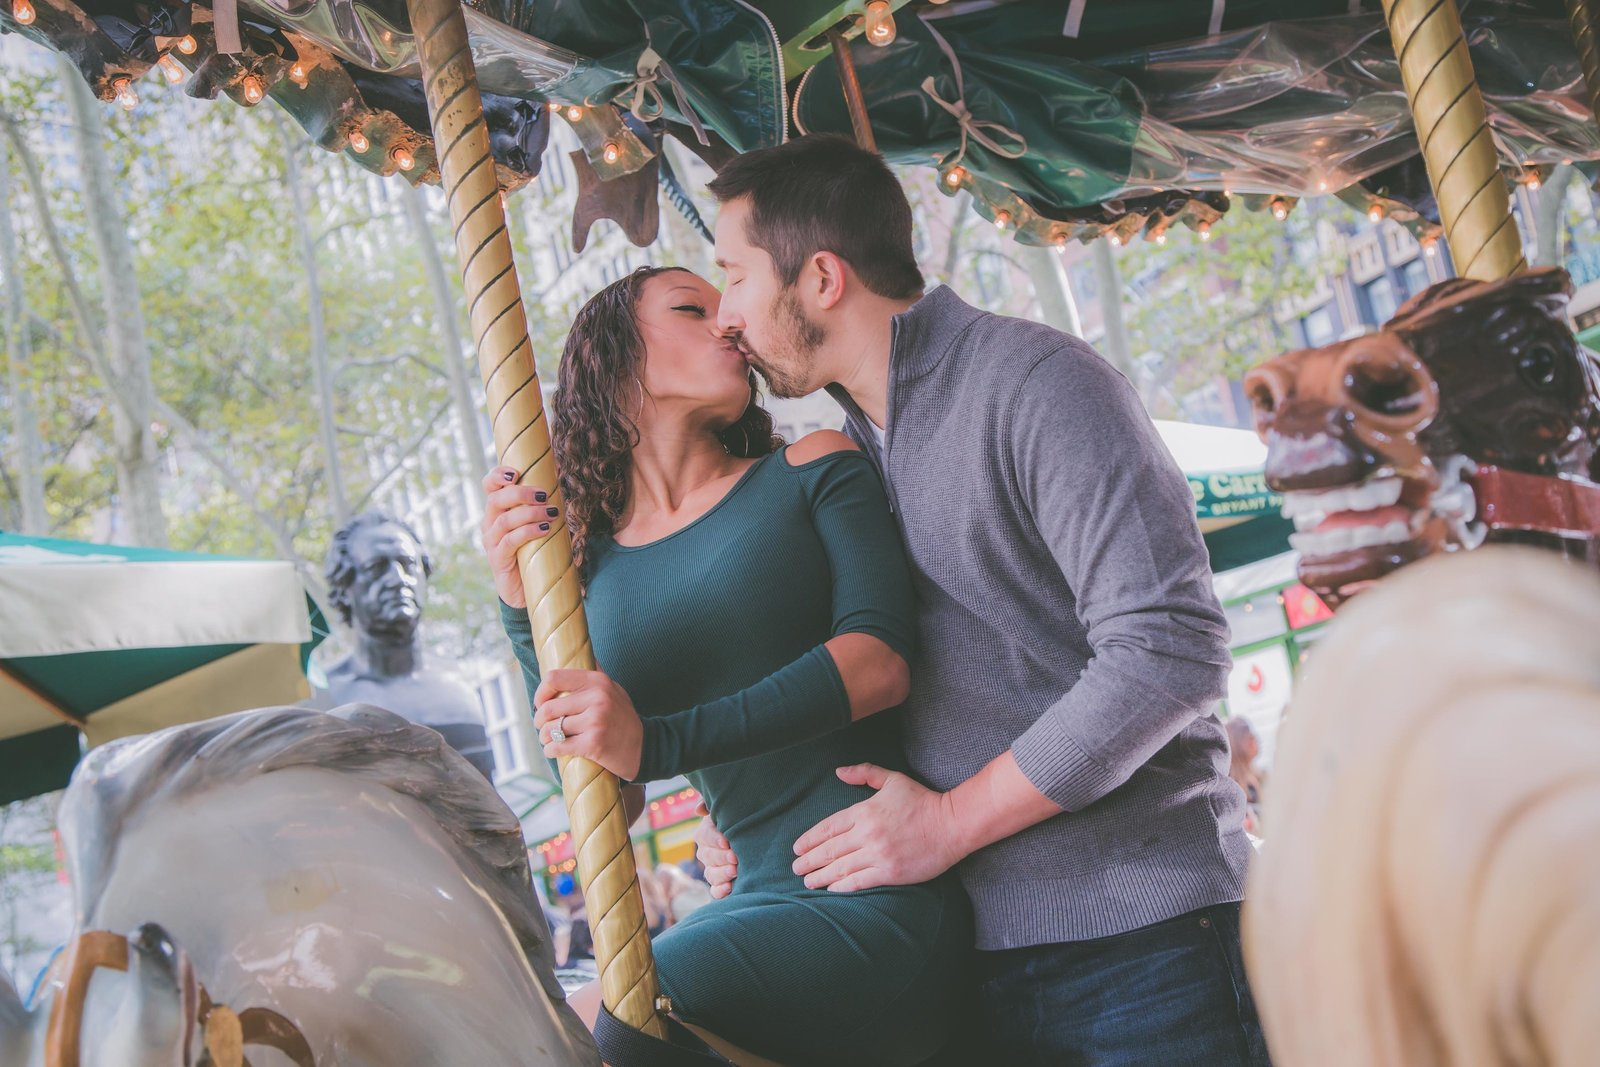 Couple kisses on Bryant Park NYC carousel.